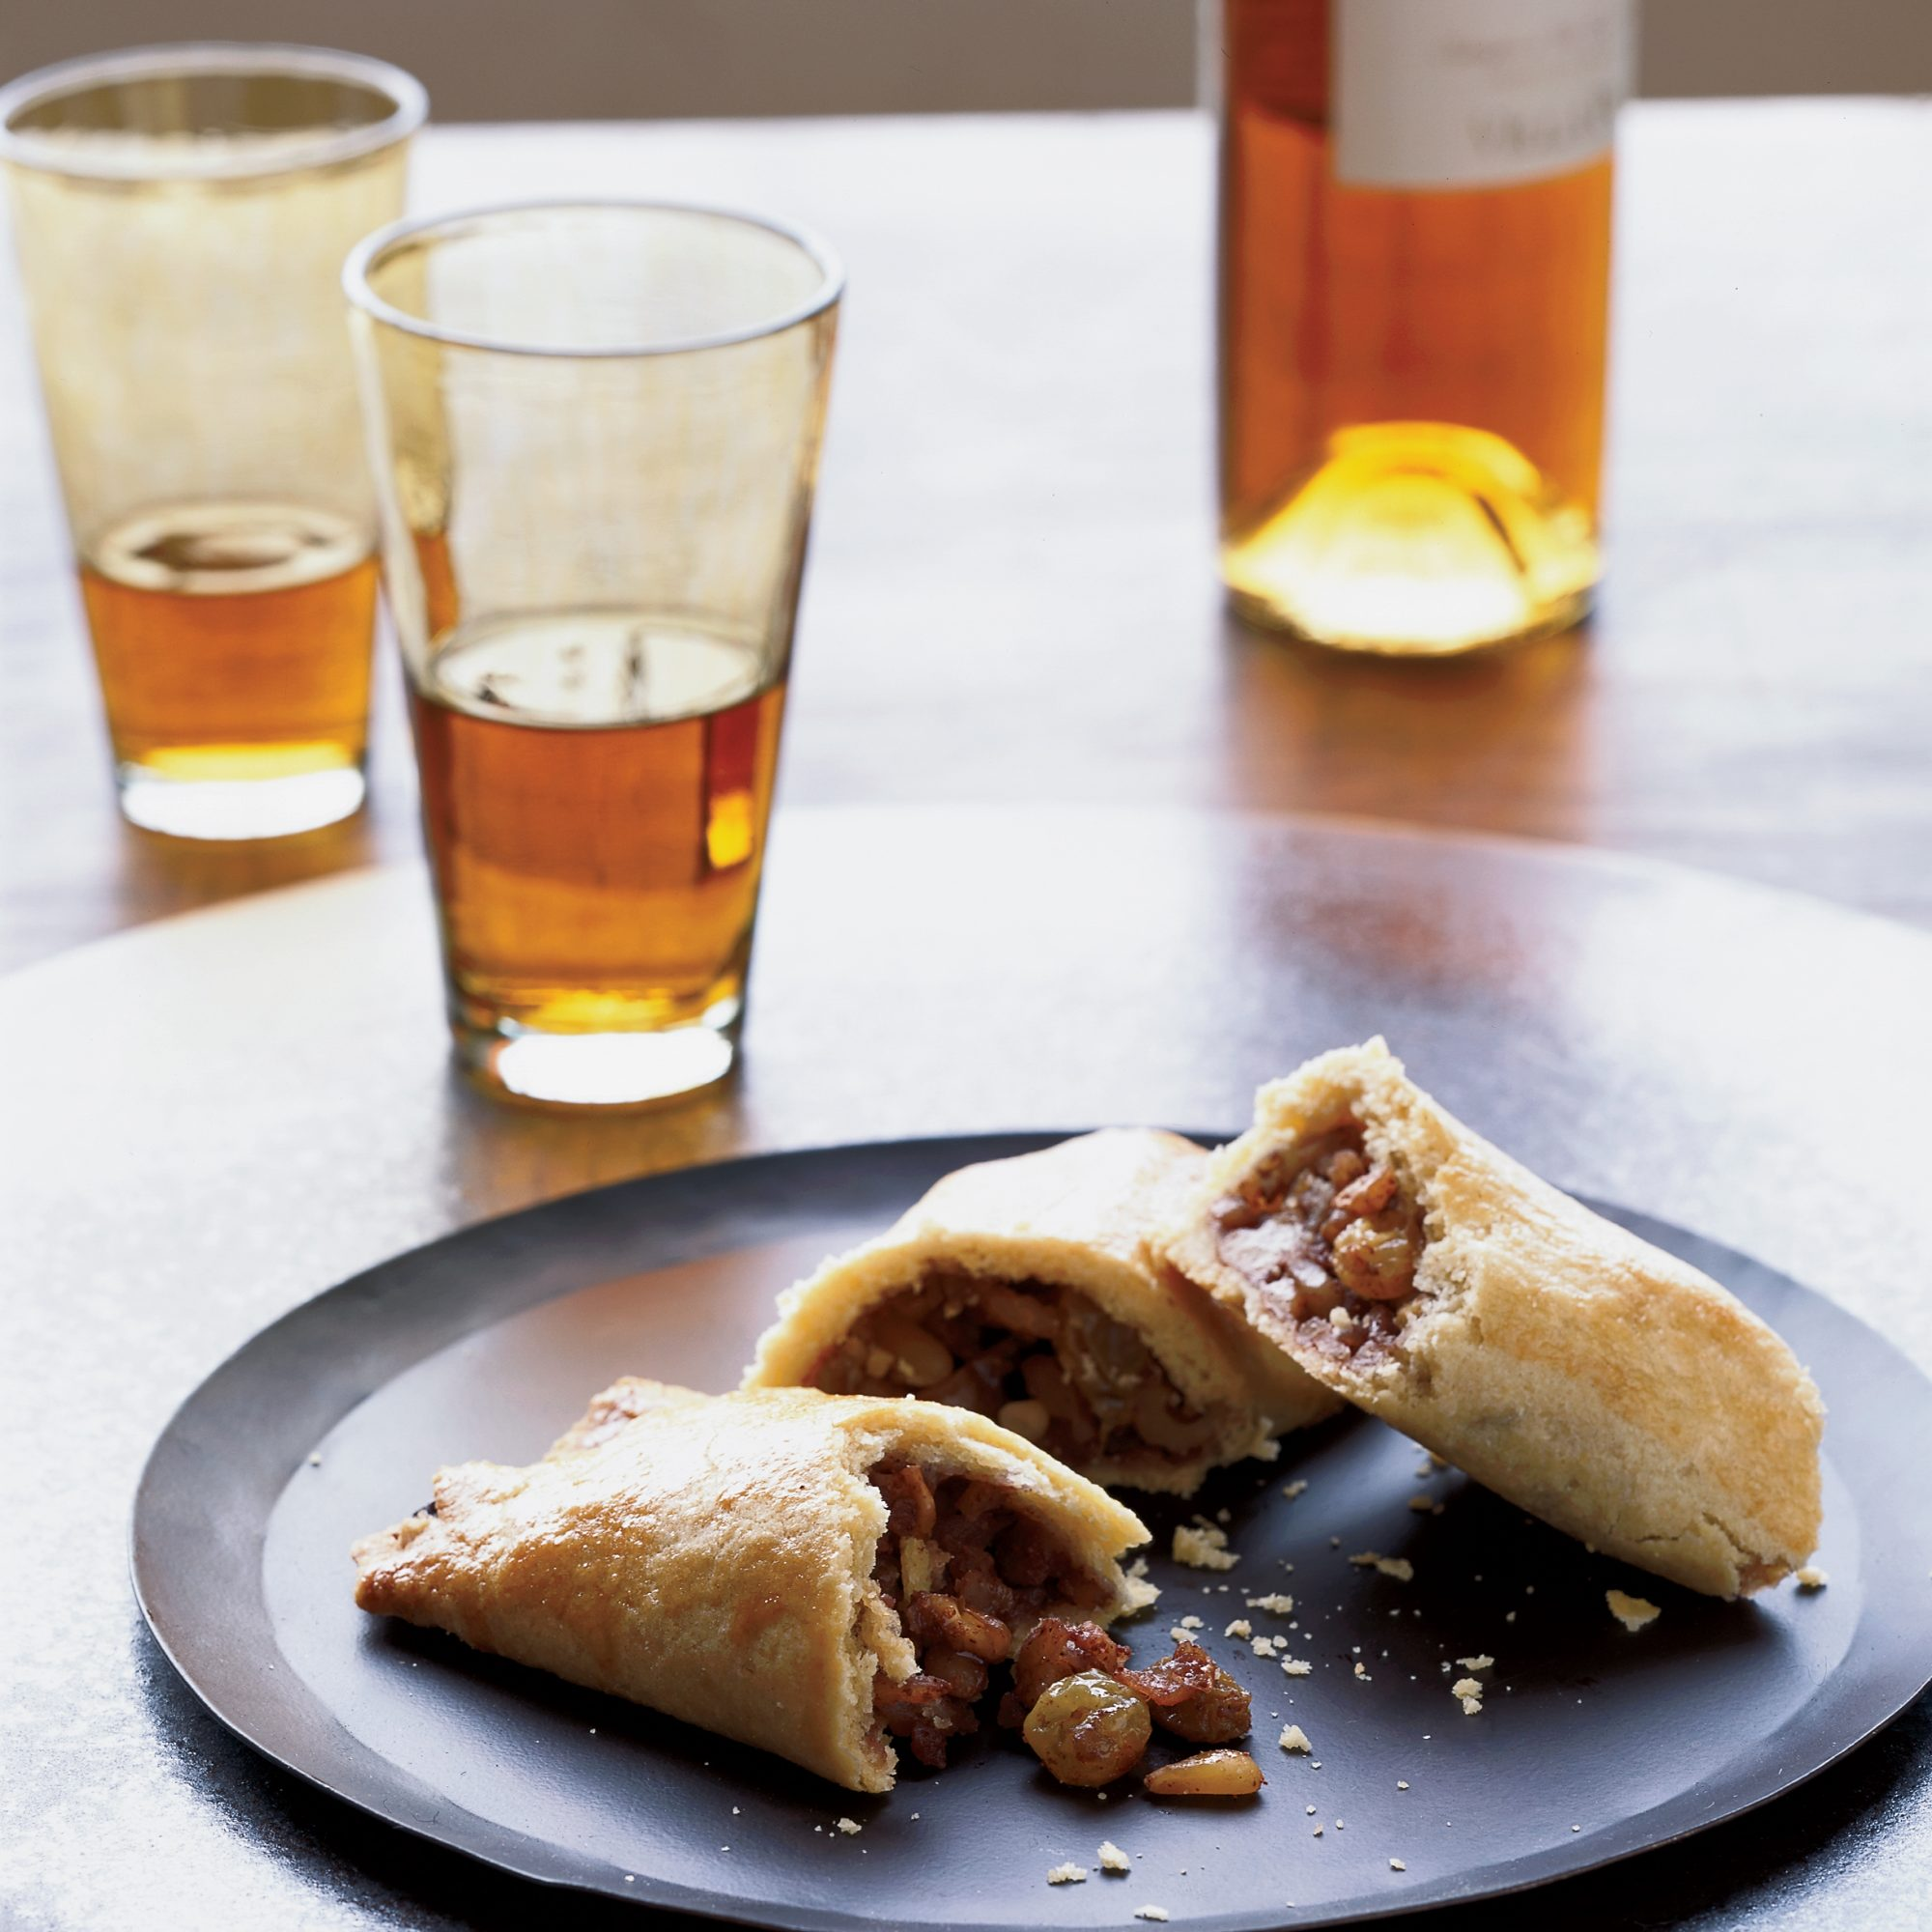 Umbrian Apple-Walnut Roll-Ups